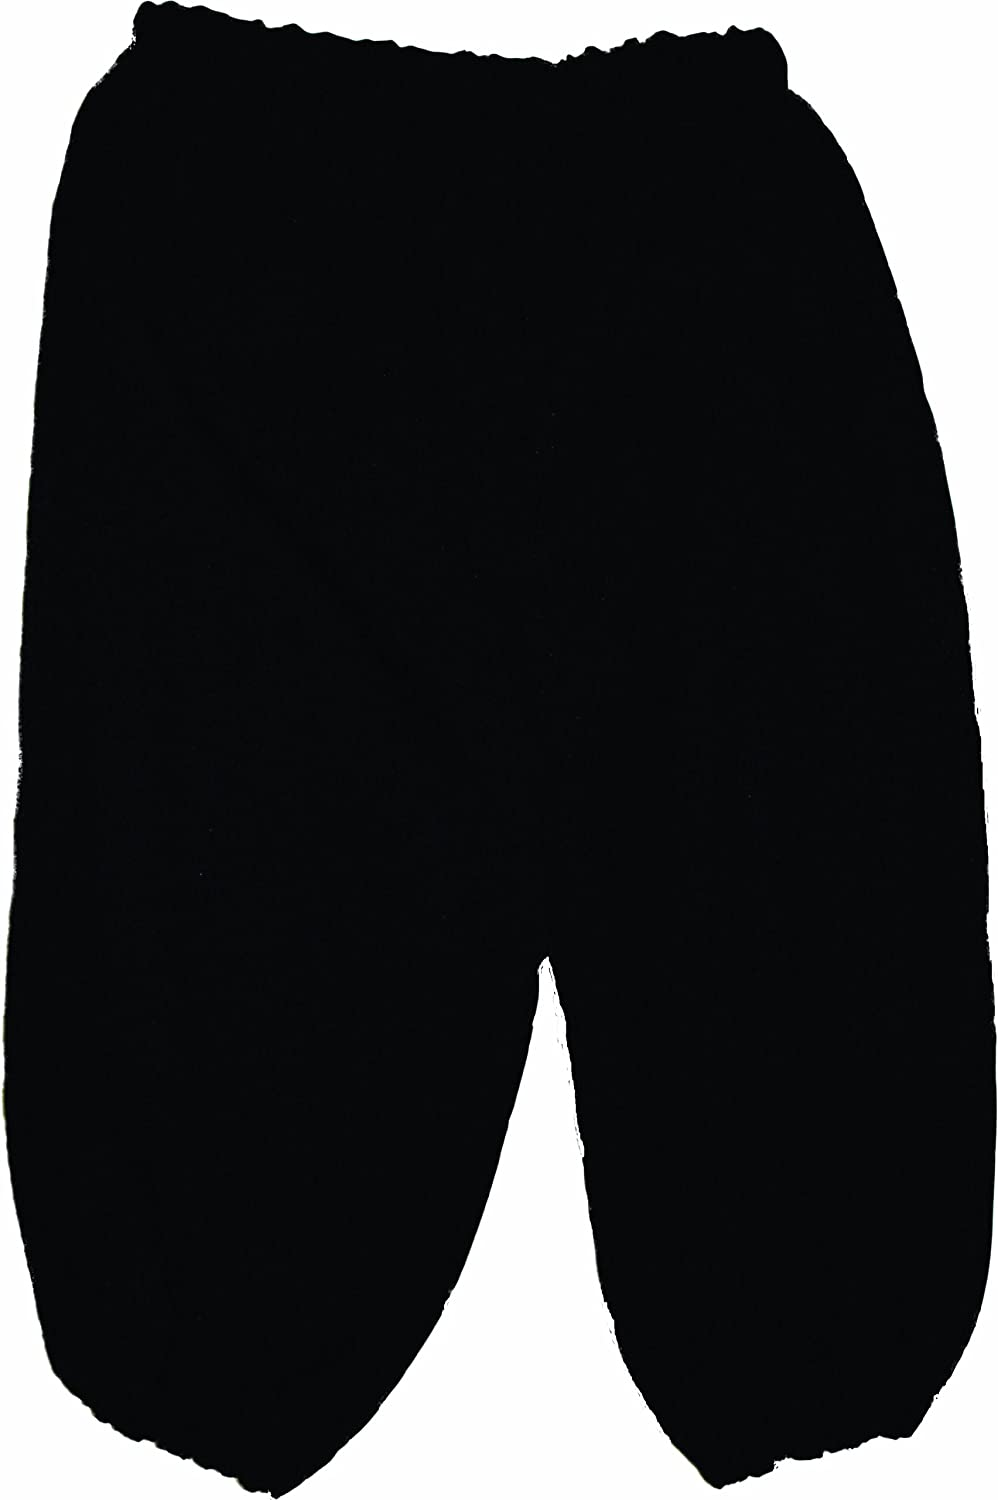 Deluxe Adult Costumes - Men's black pirate knickers, pirate breeches, pirate pants, pirate trousers by Alexanders Costumes